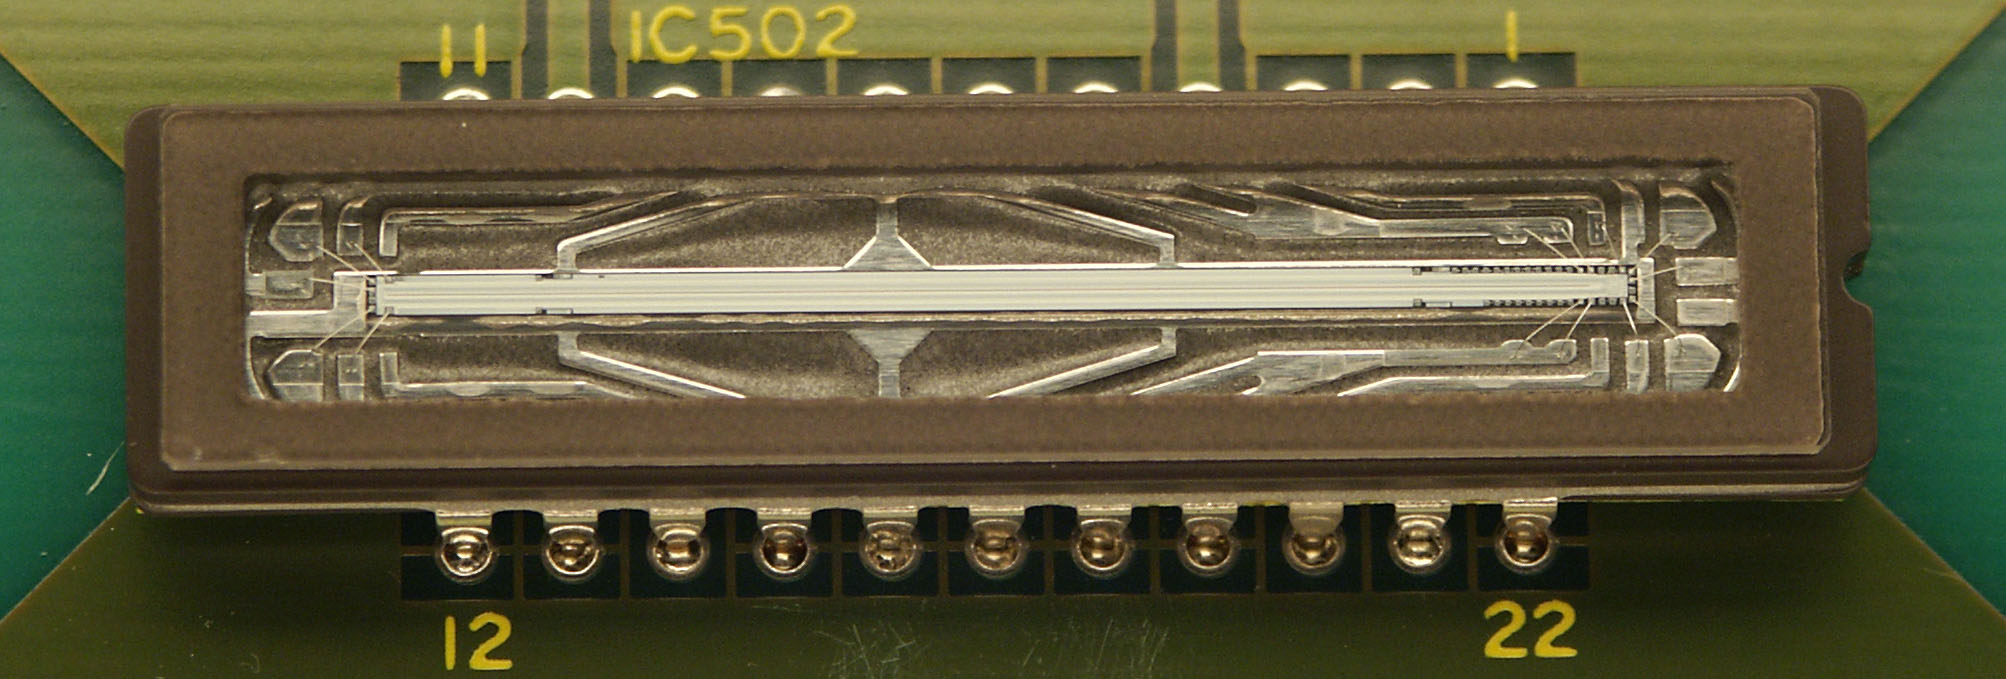 An early single-line CCD sensor, similar to what would've been used in this story.